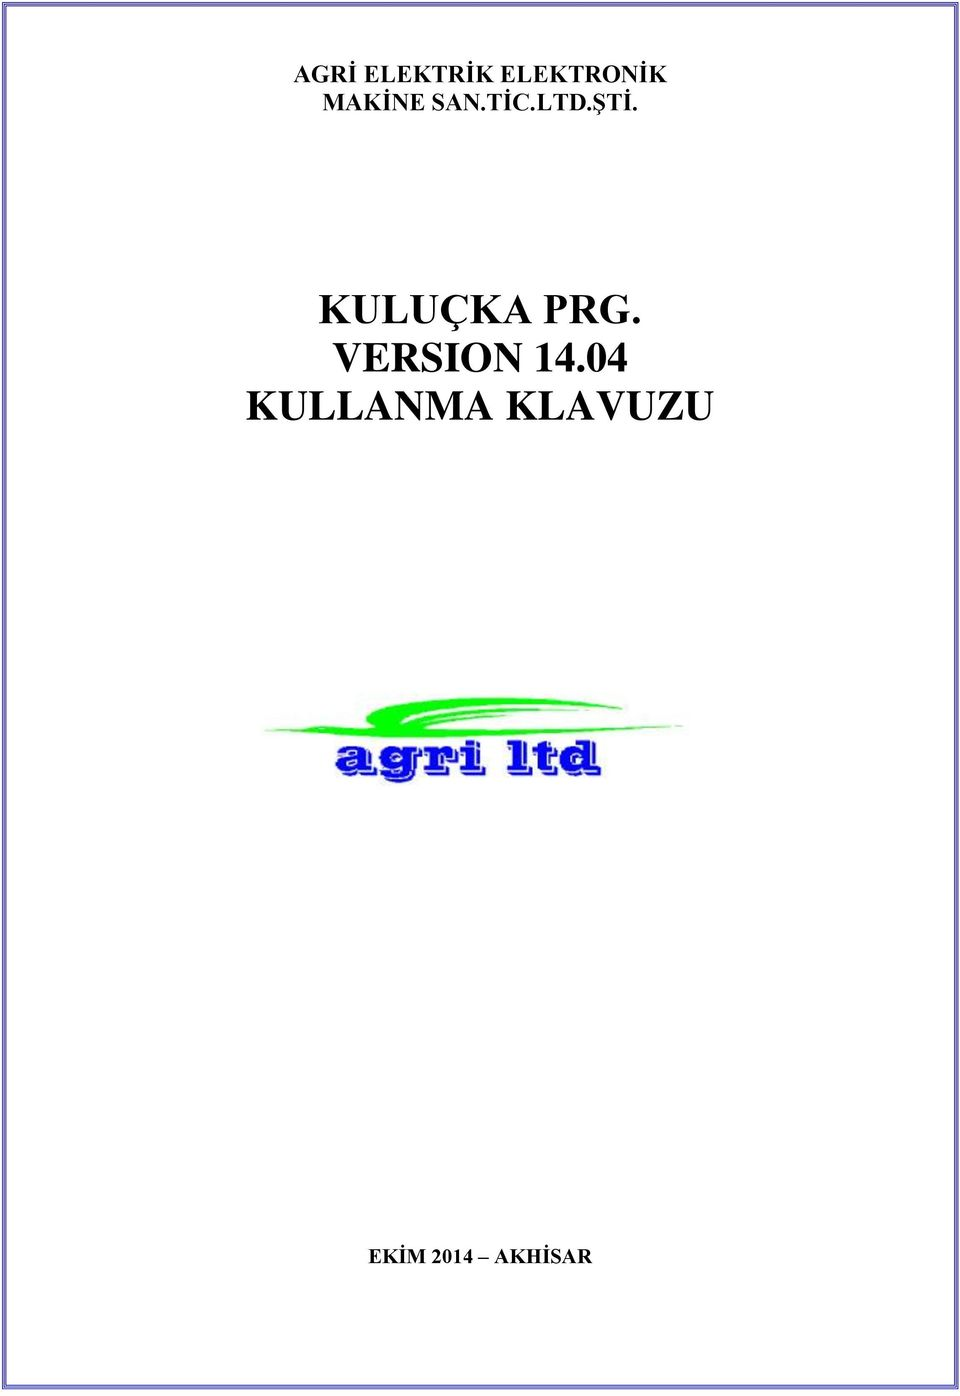 KULUÇKA PRG. VERSION 14.